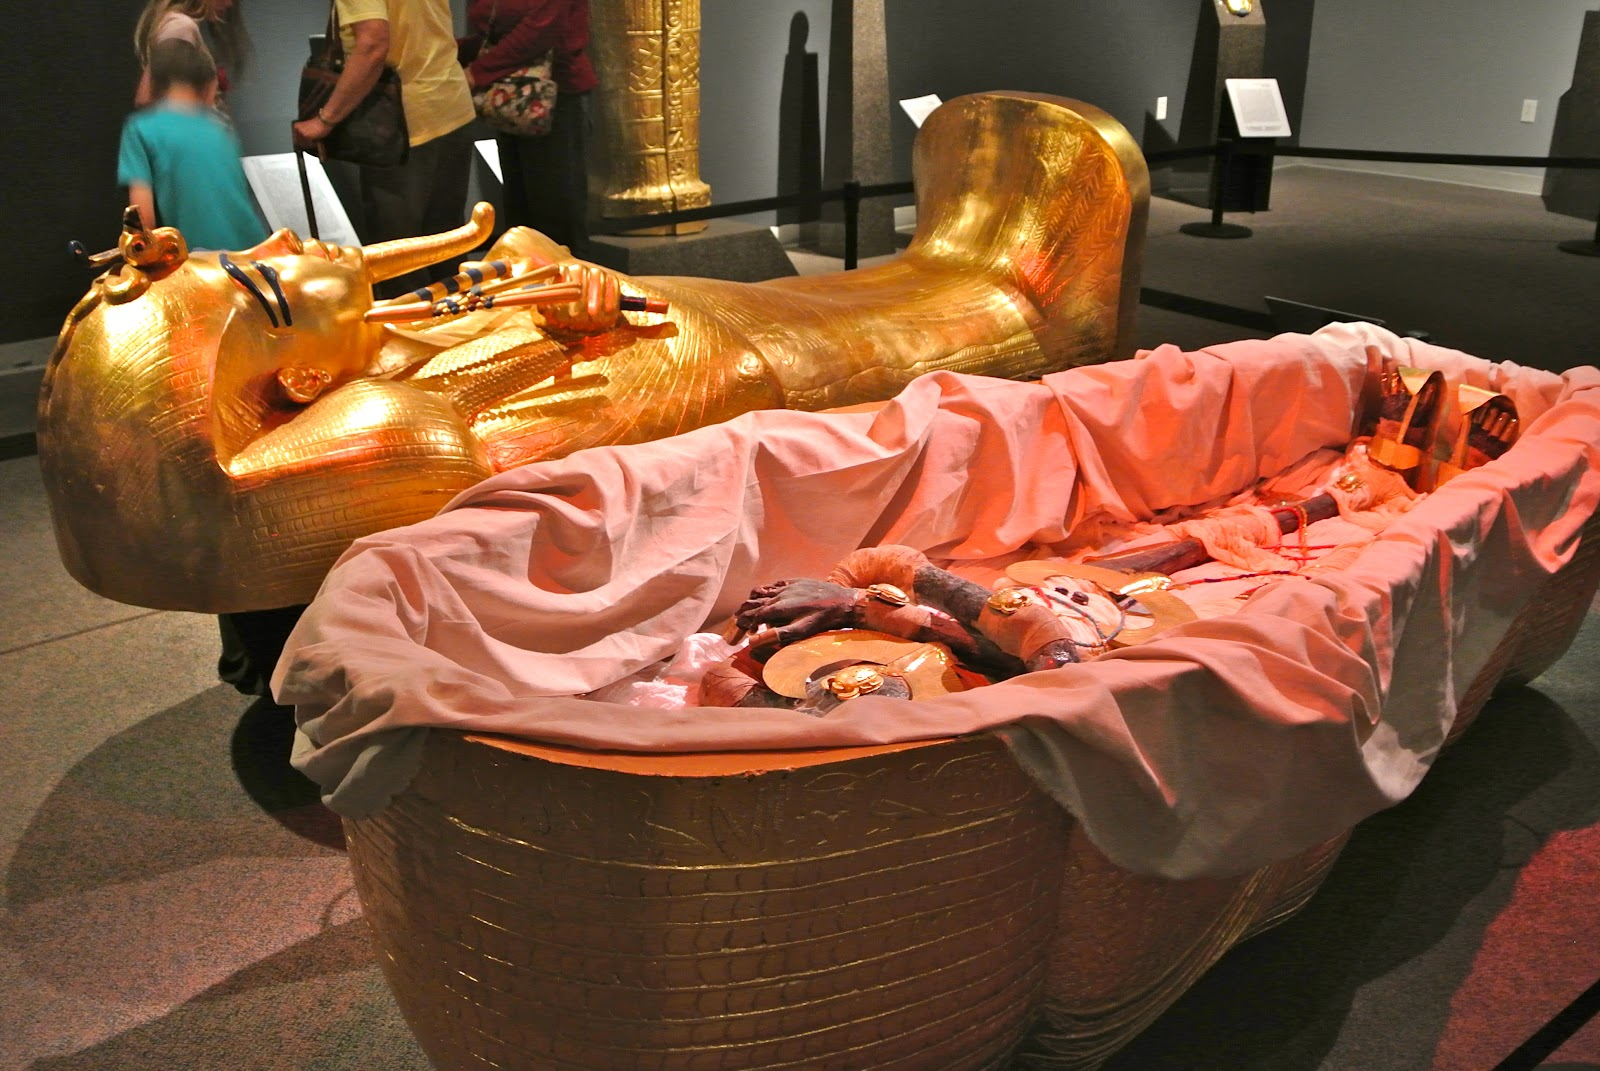 Life is Good: Egypt in Idaho with King Tut